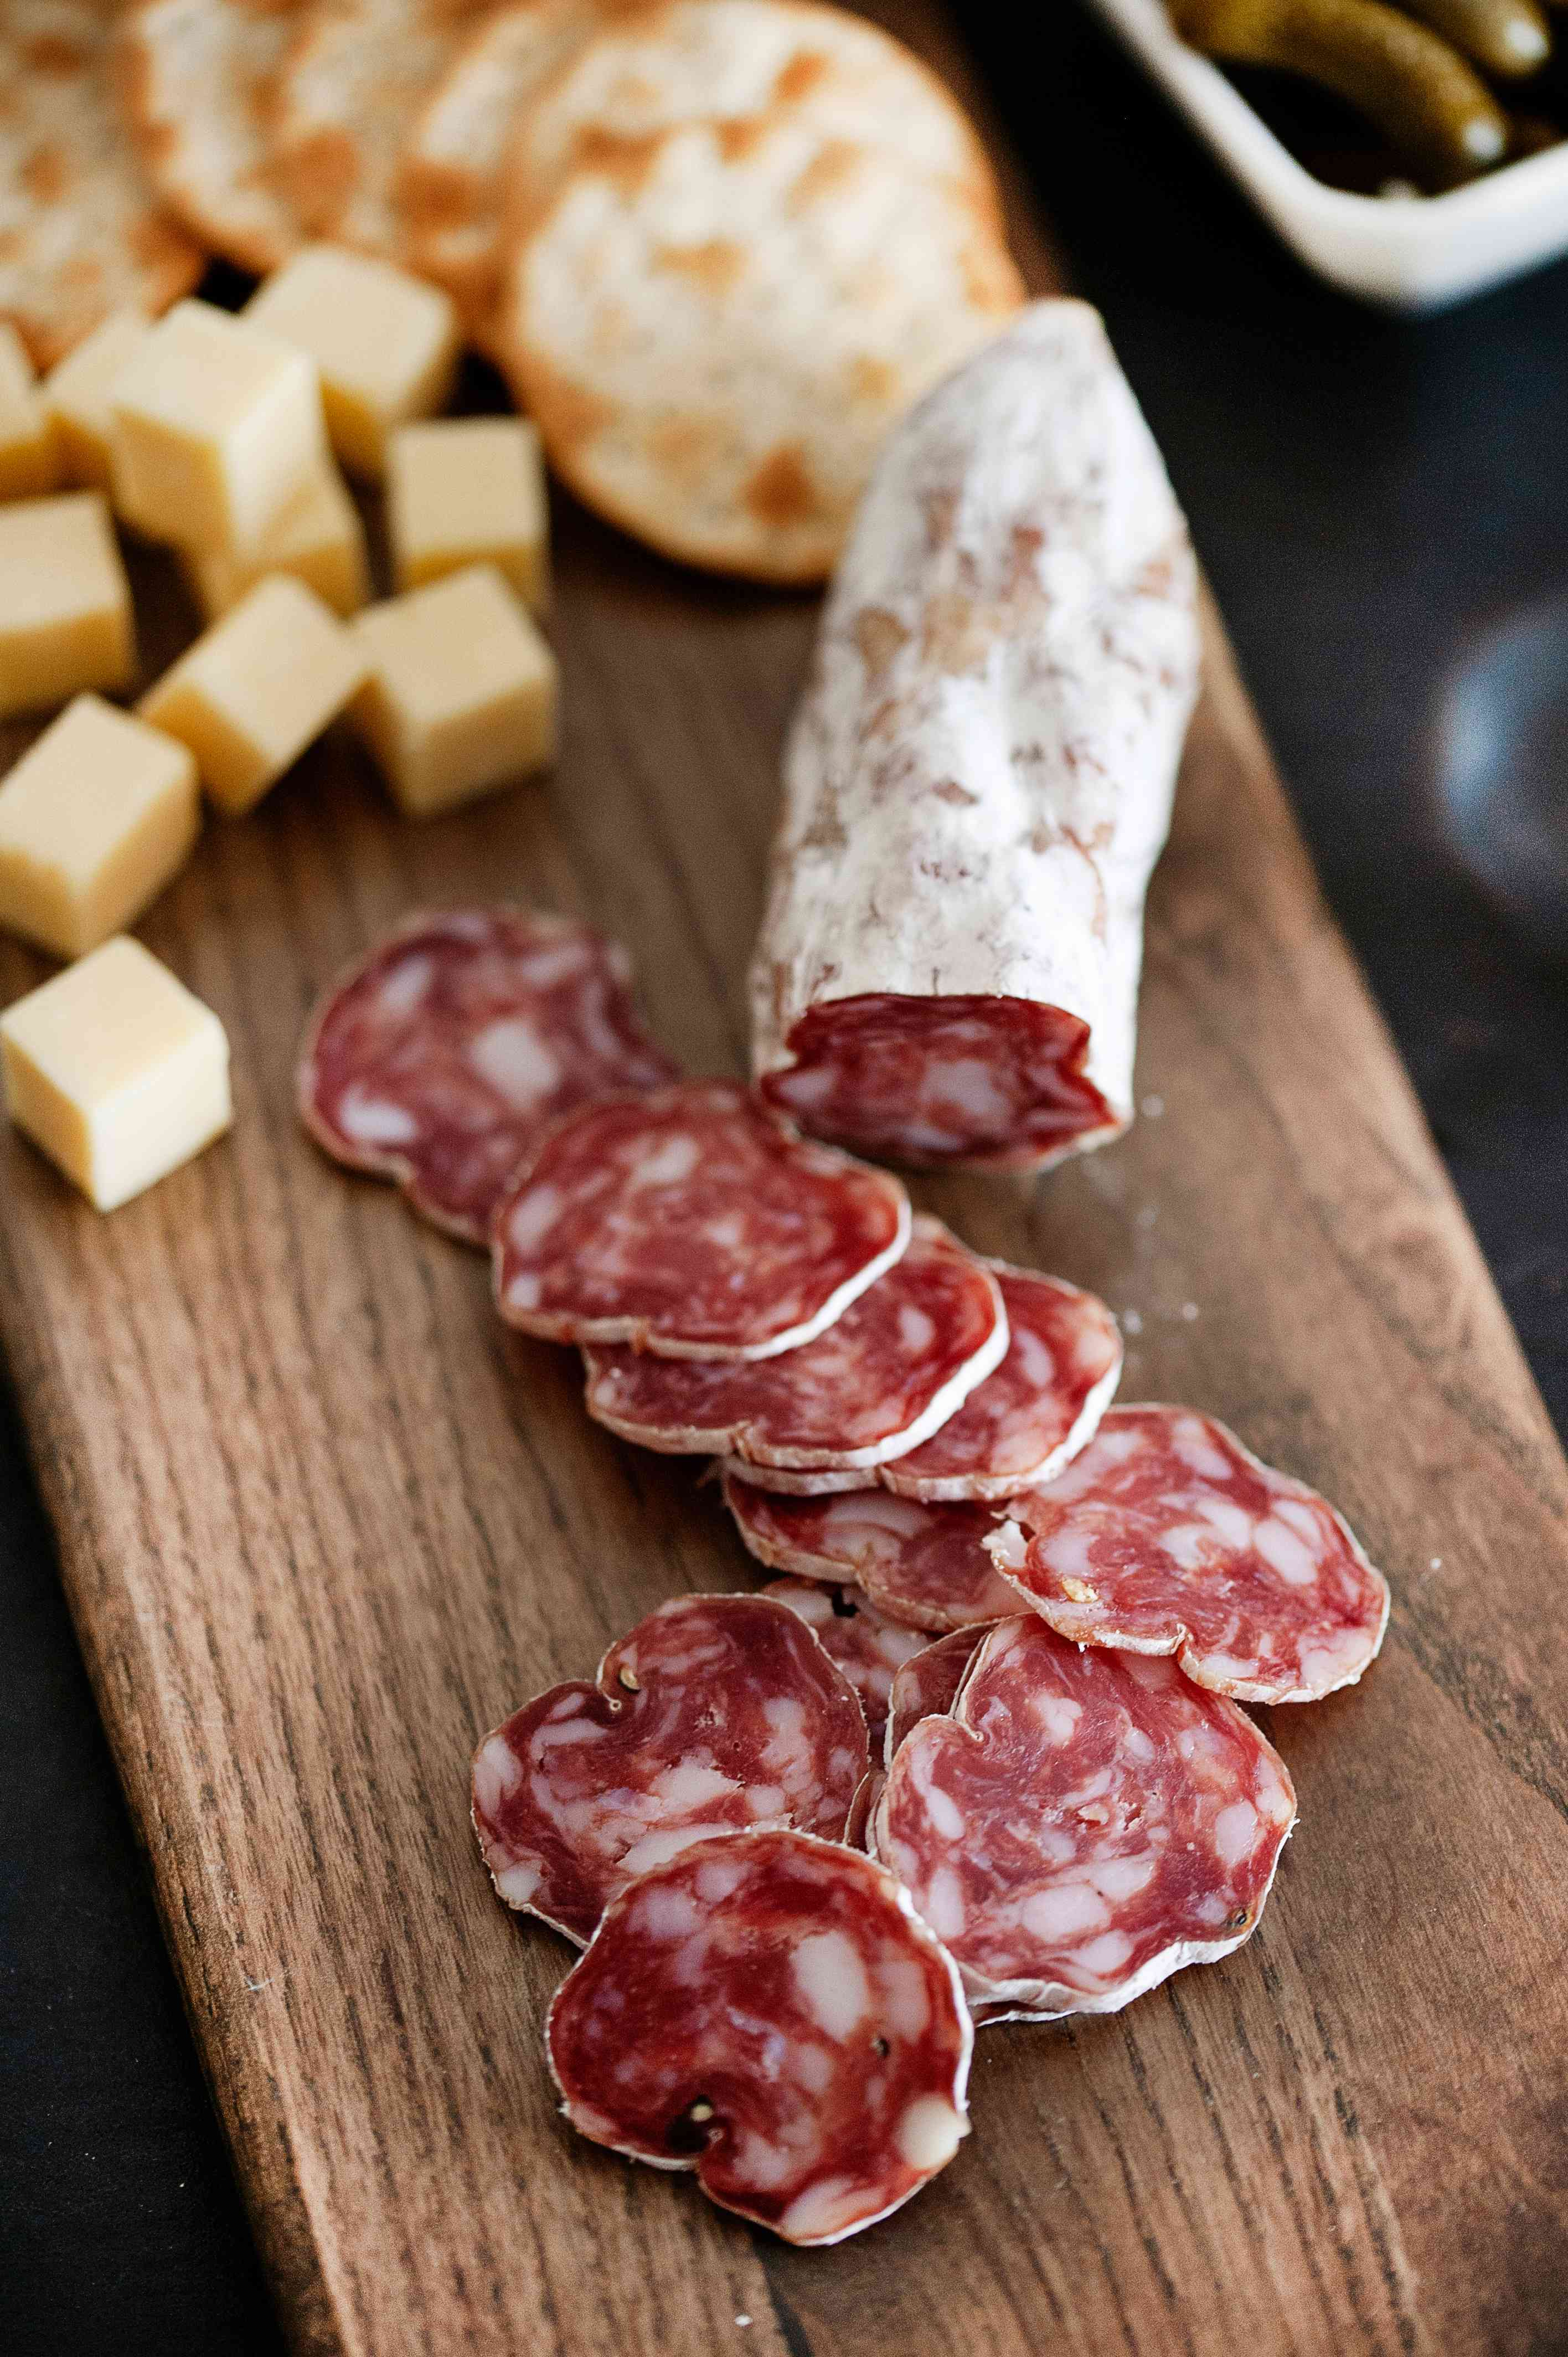 sliced soppressata link and crackers on cutting board